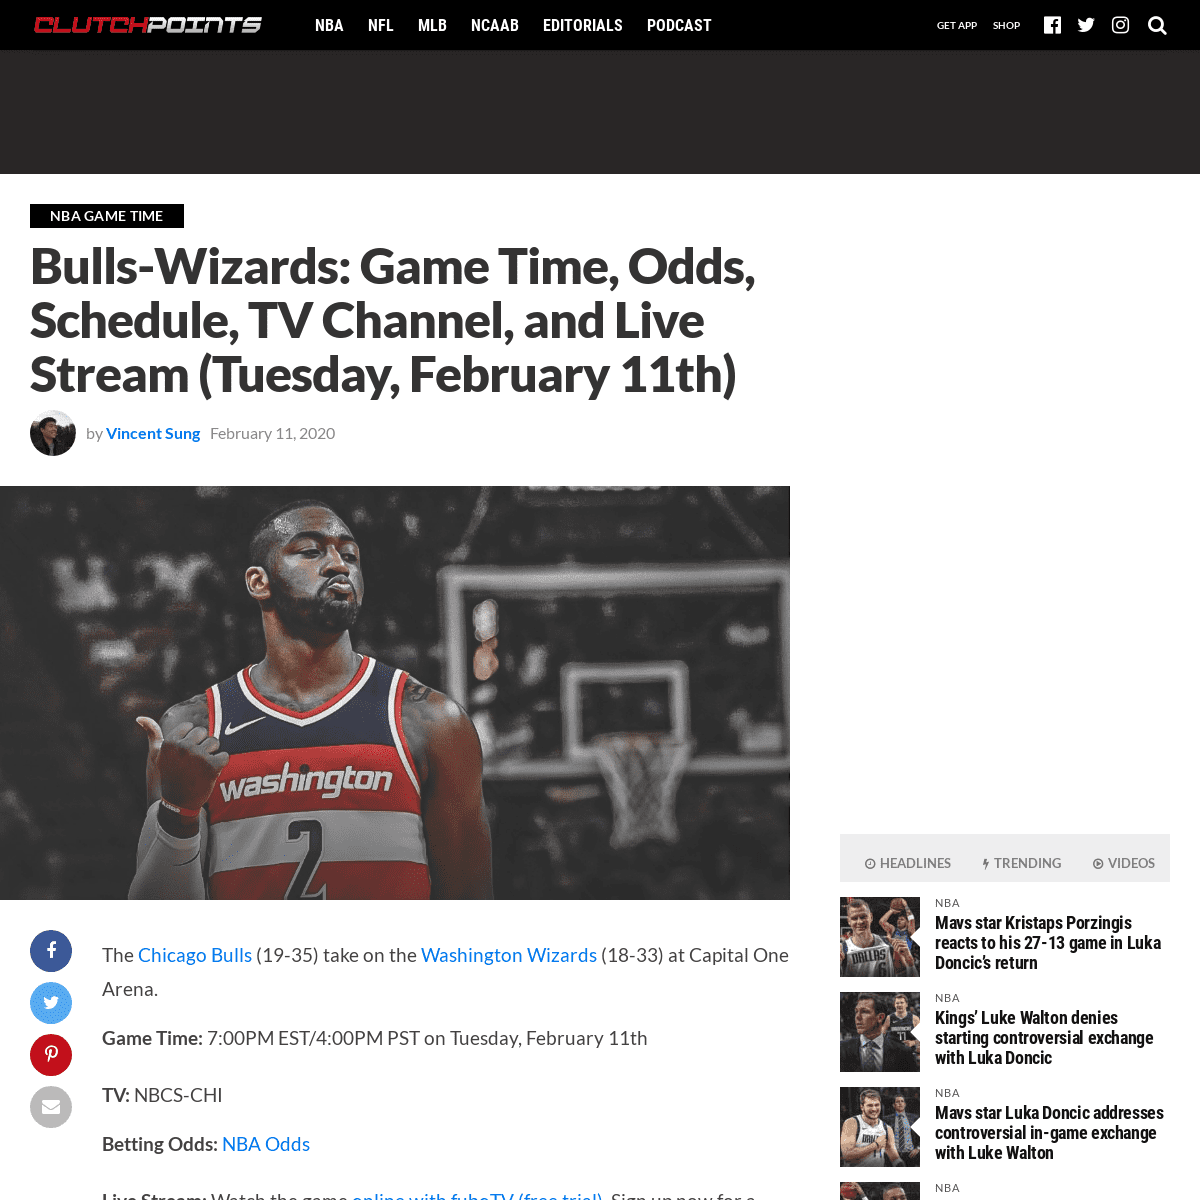 ArchiveBay.com - clutchpoints.com/bulls-wizards-game-time-odds-schedule-tv-channel-and-live-stream-tuesday-february-11th/ - Bulls-Wizards- Game Time, Odds, Schedule, TV Channel, and Live Stream (Tuesday, February 11th)